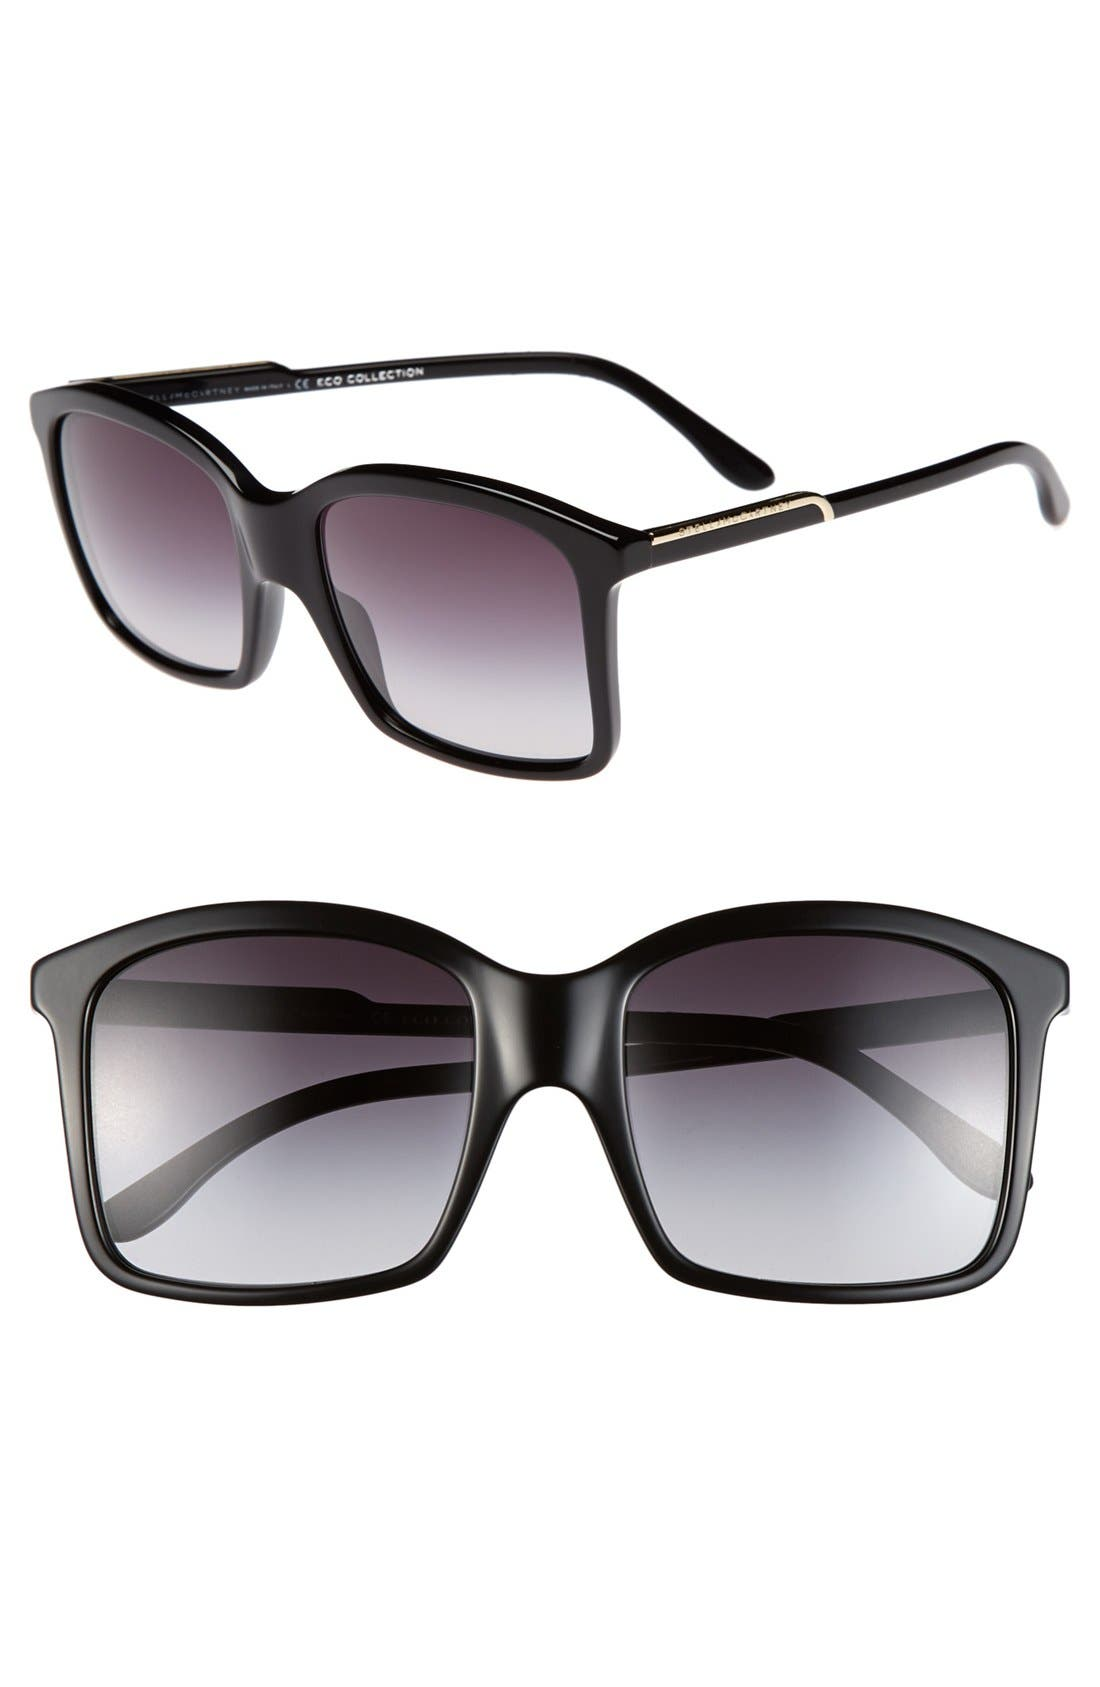 54mm Oversized Sunglasses,                         Main,                         color, Black